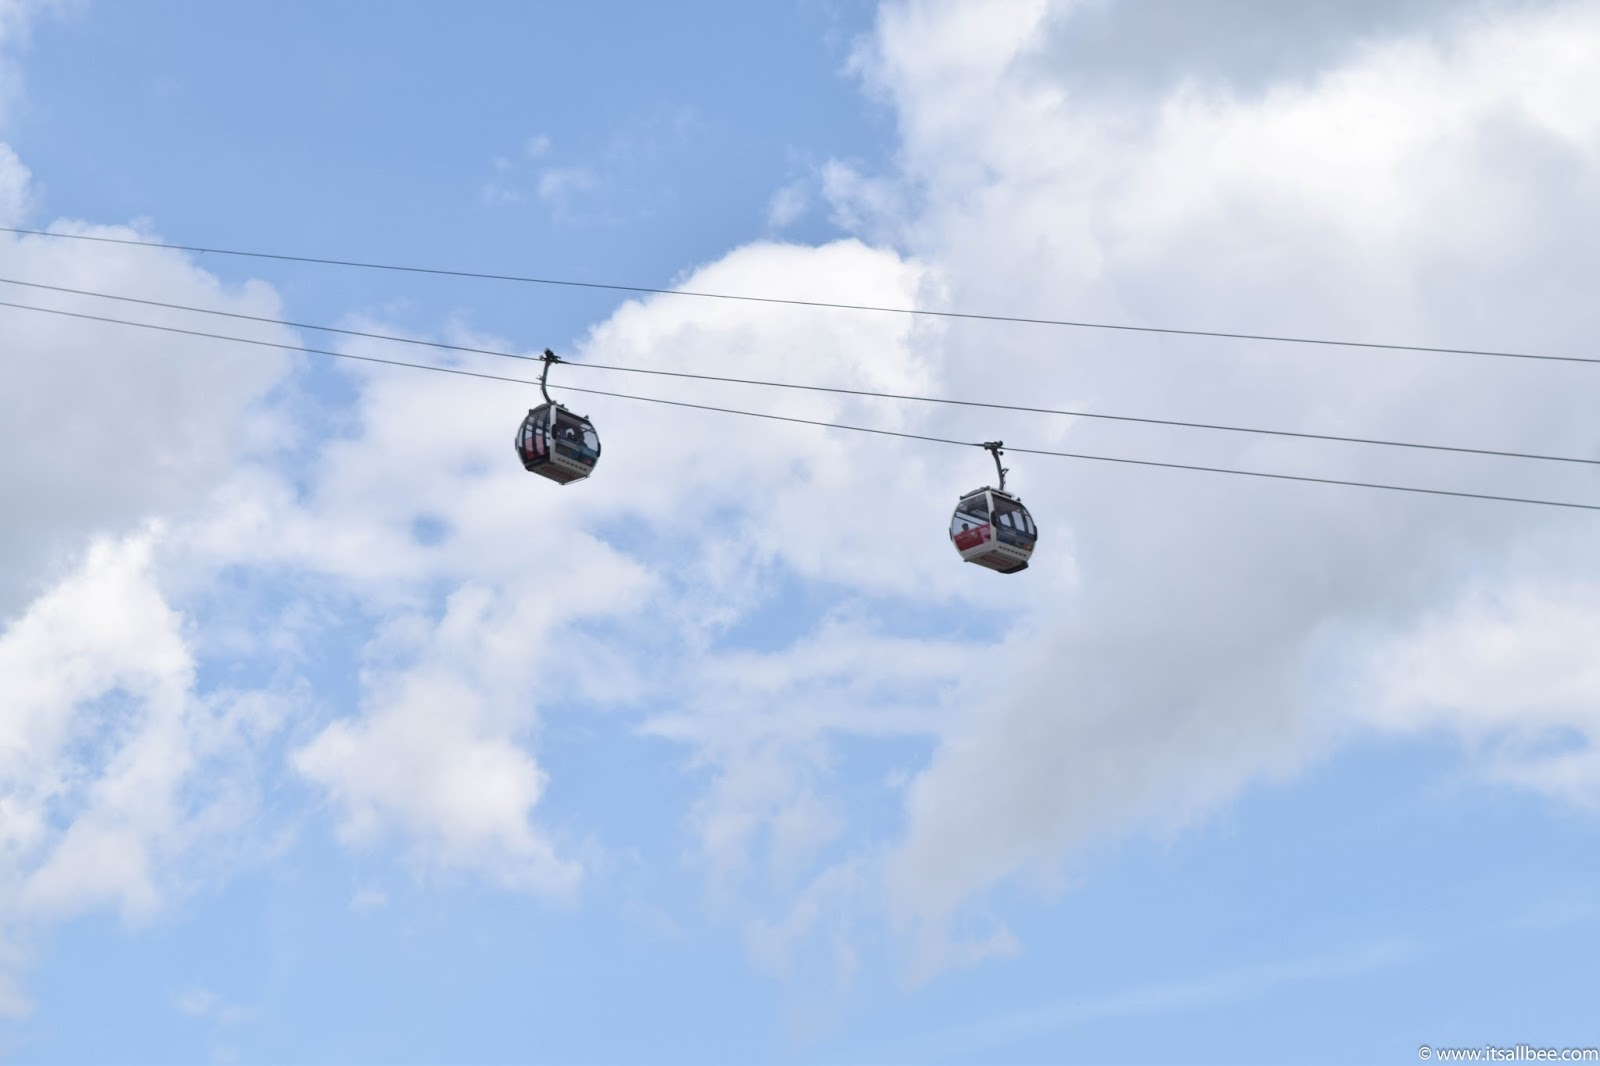 North Greenwich emirates cable cars